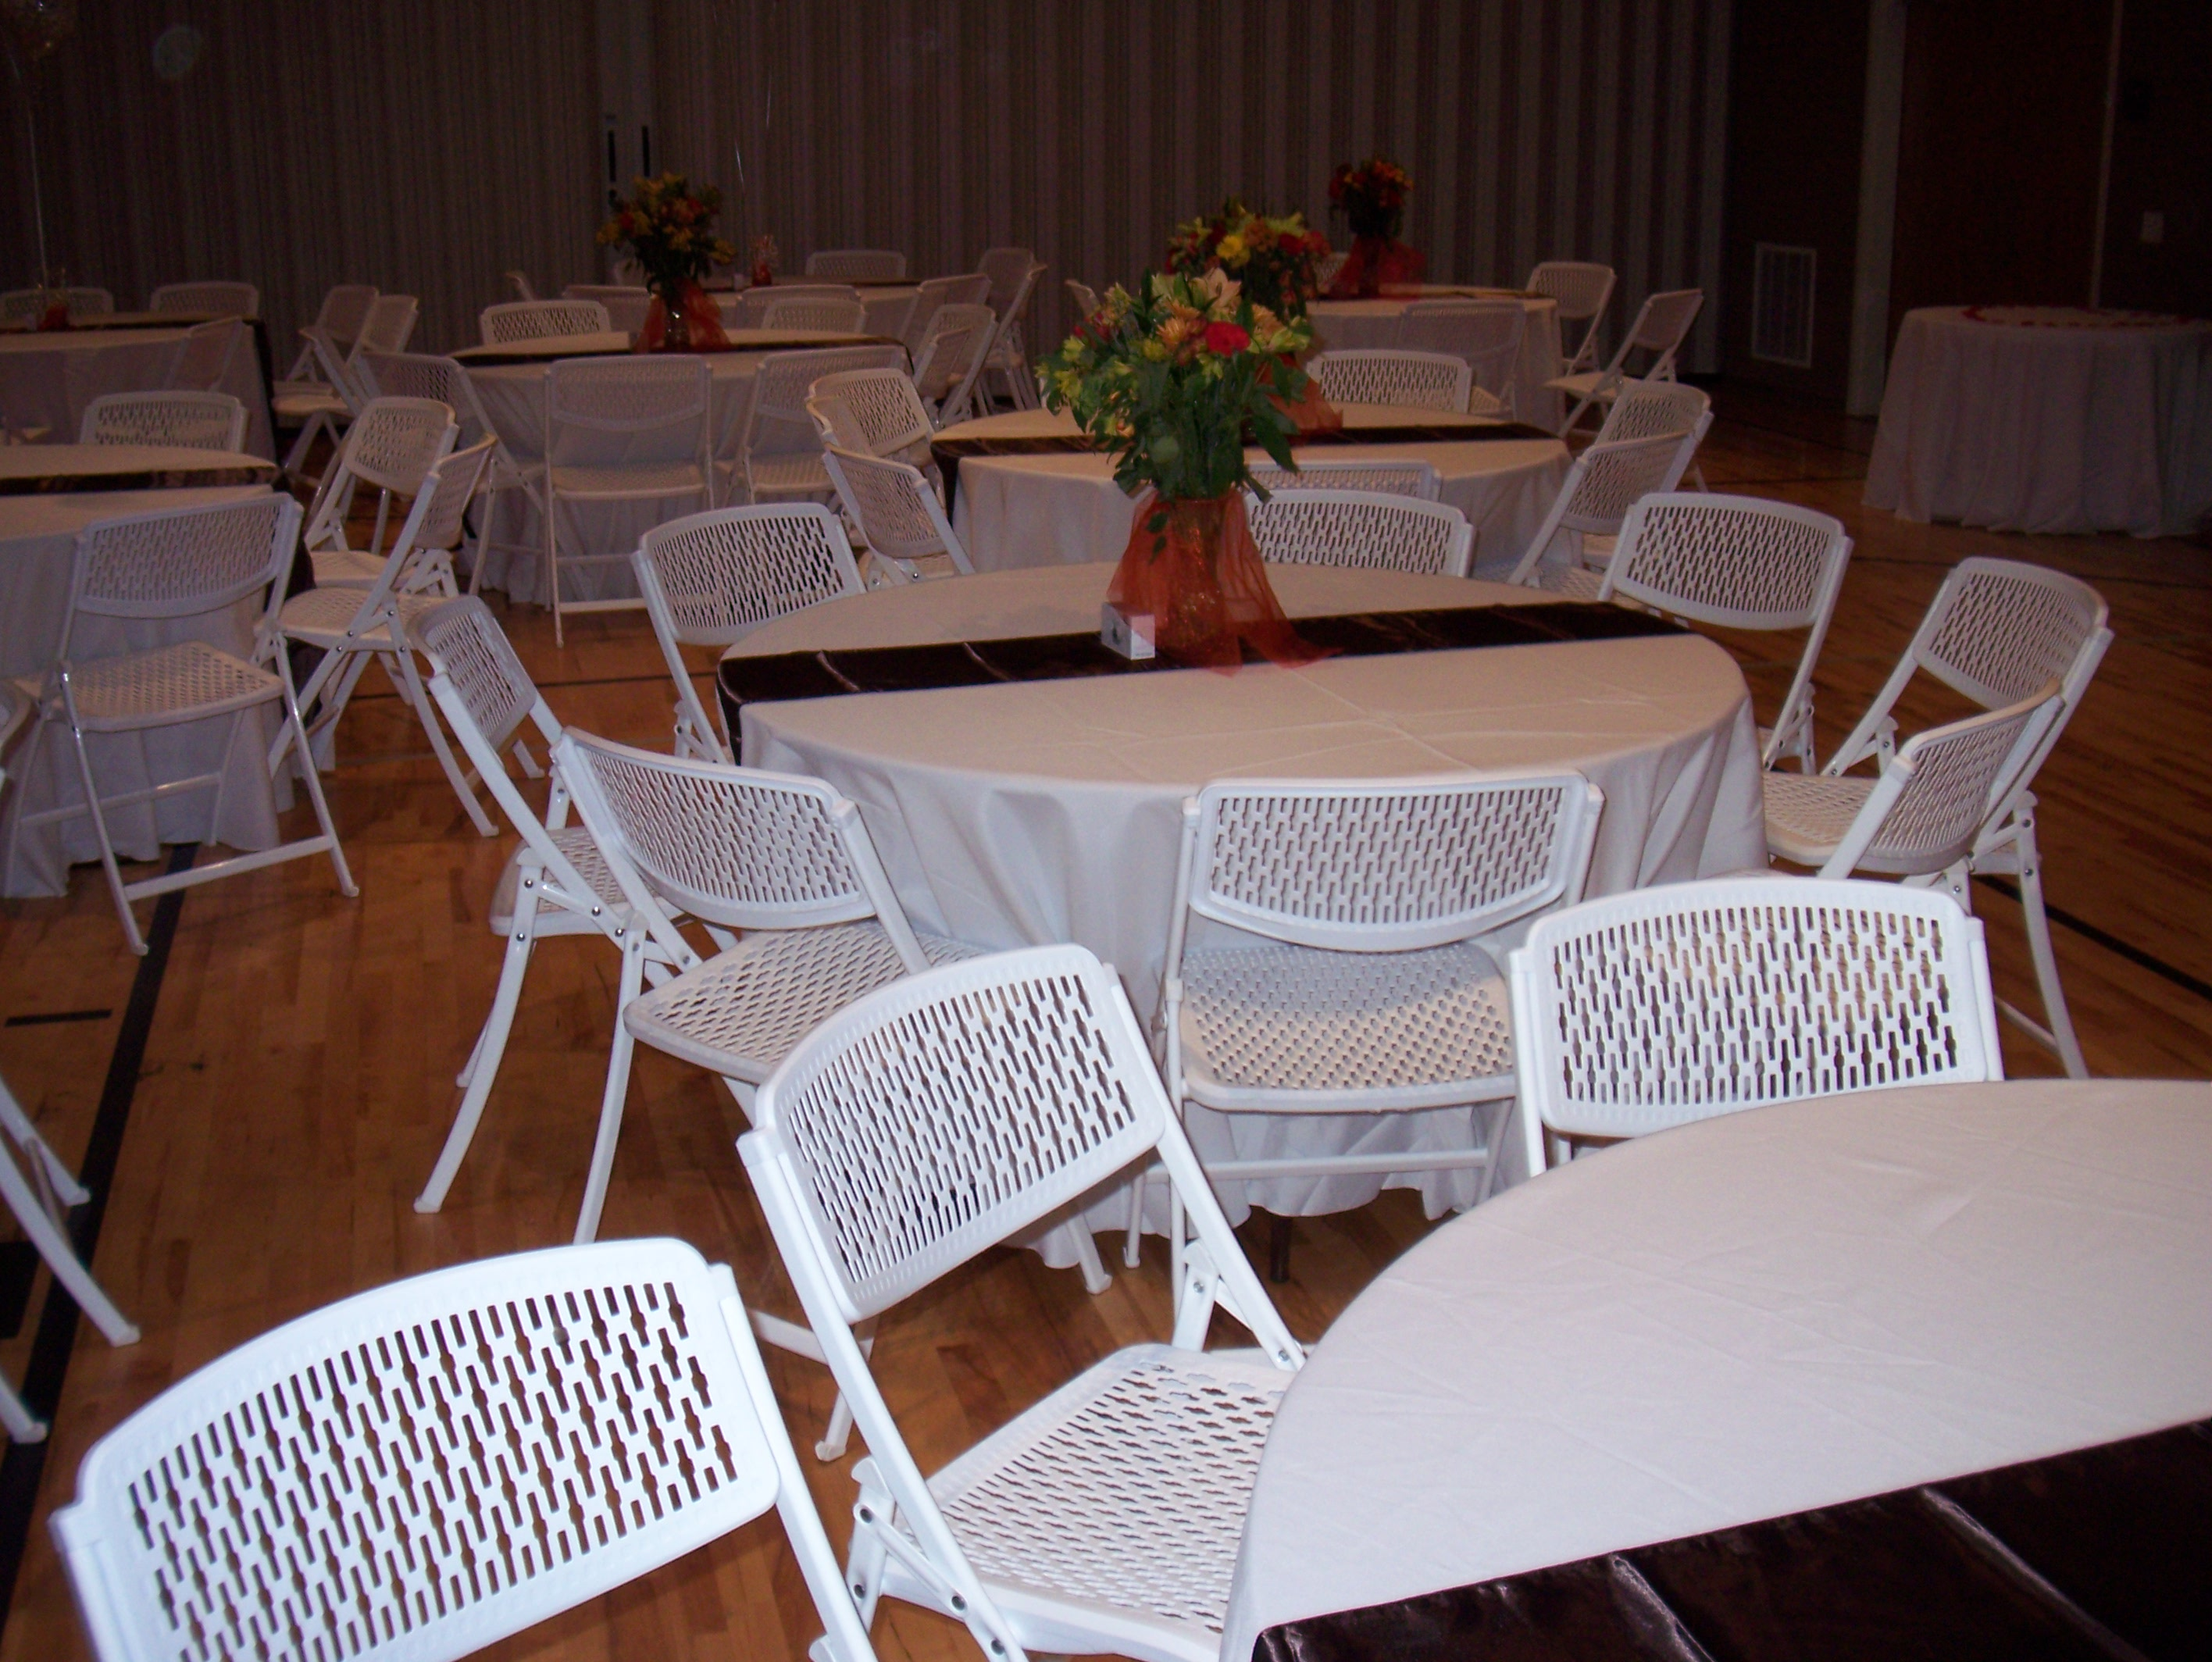 chair for rent fishing bed dimensions aca wedding rentals event rental